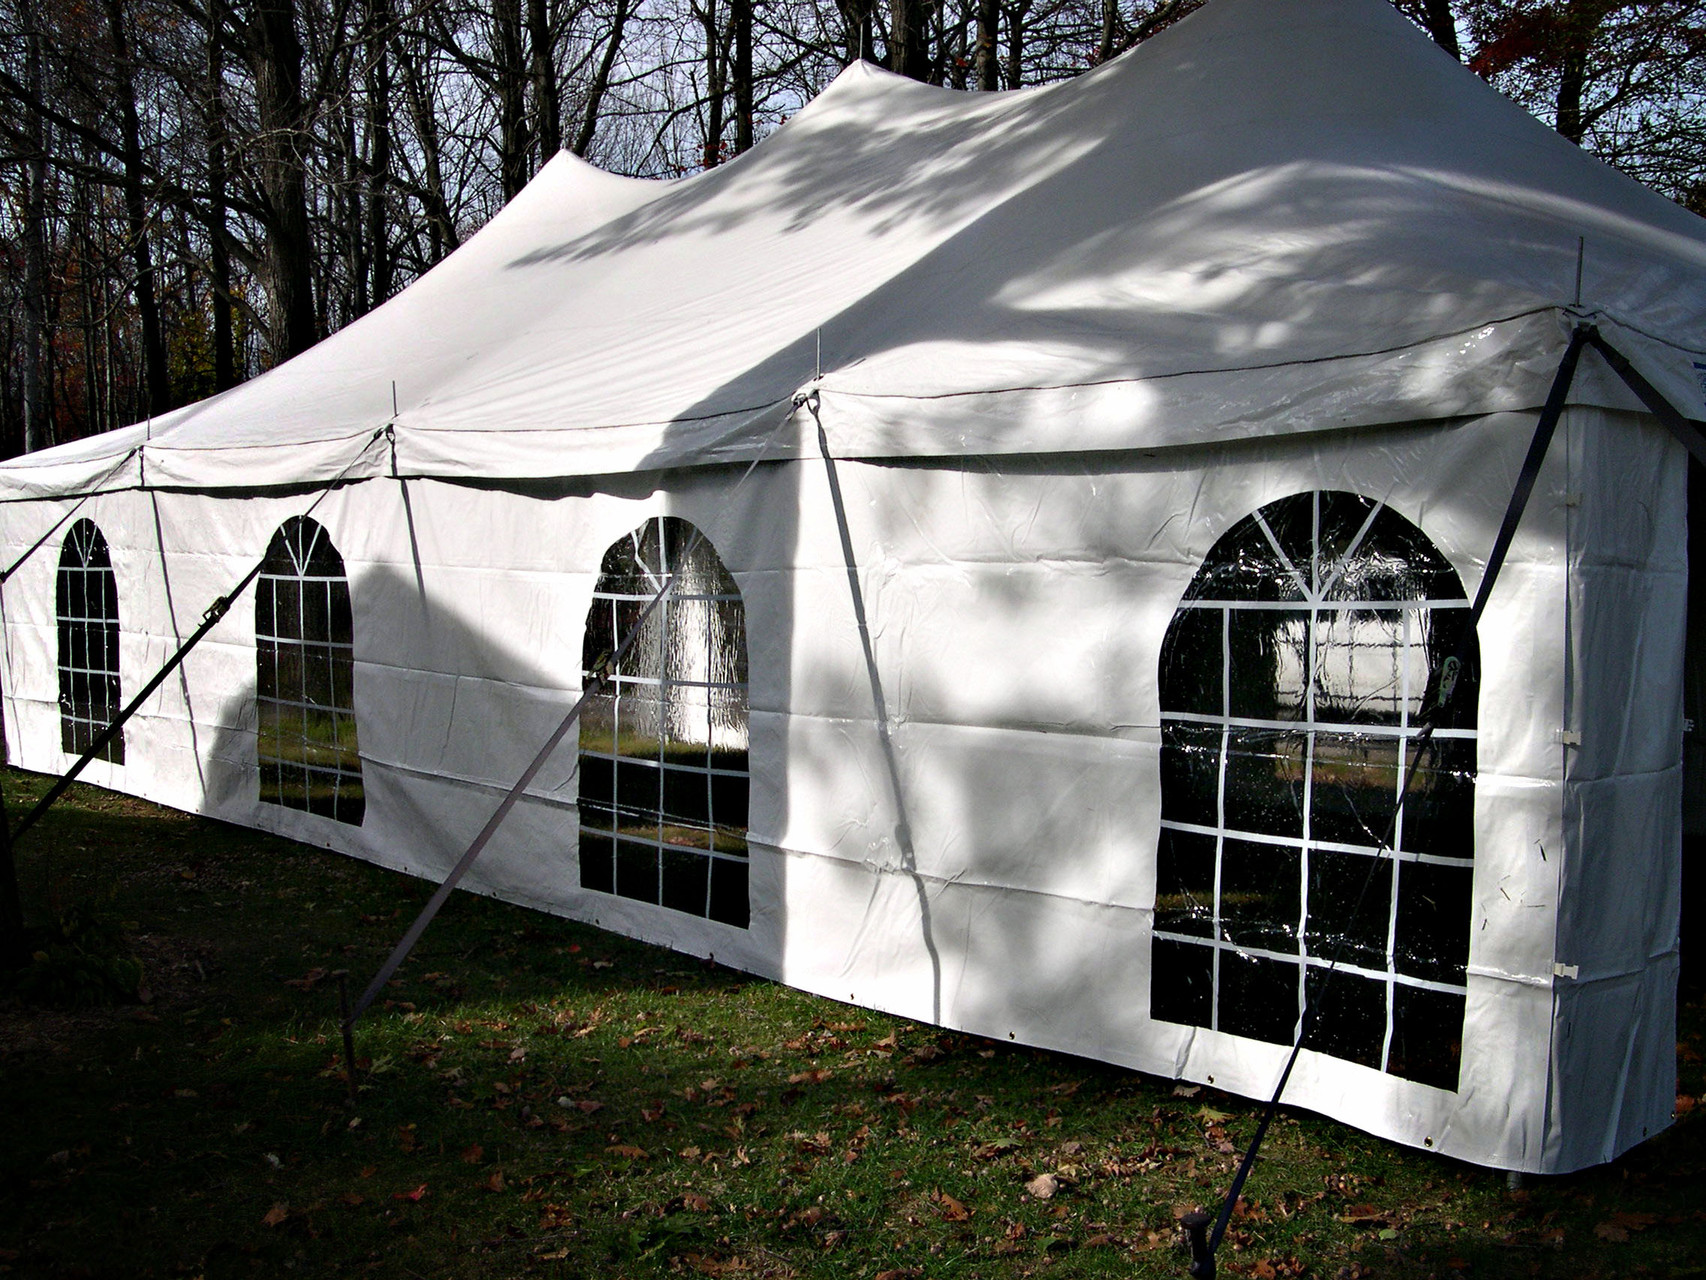 20 x 40 Pole tent with optional window side walls